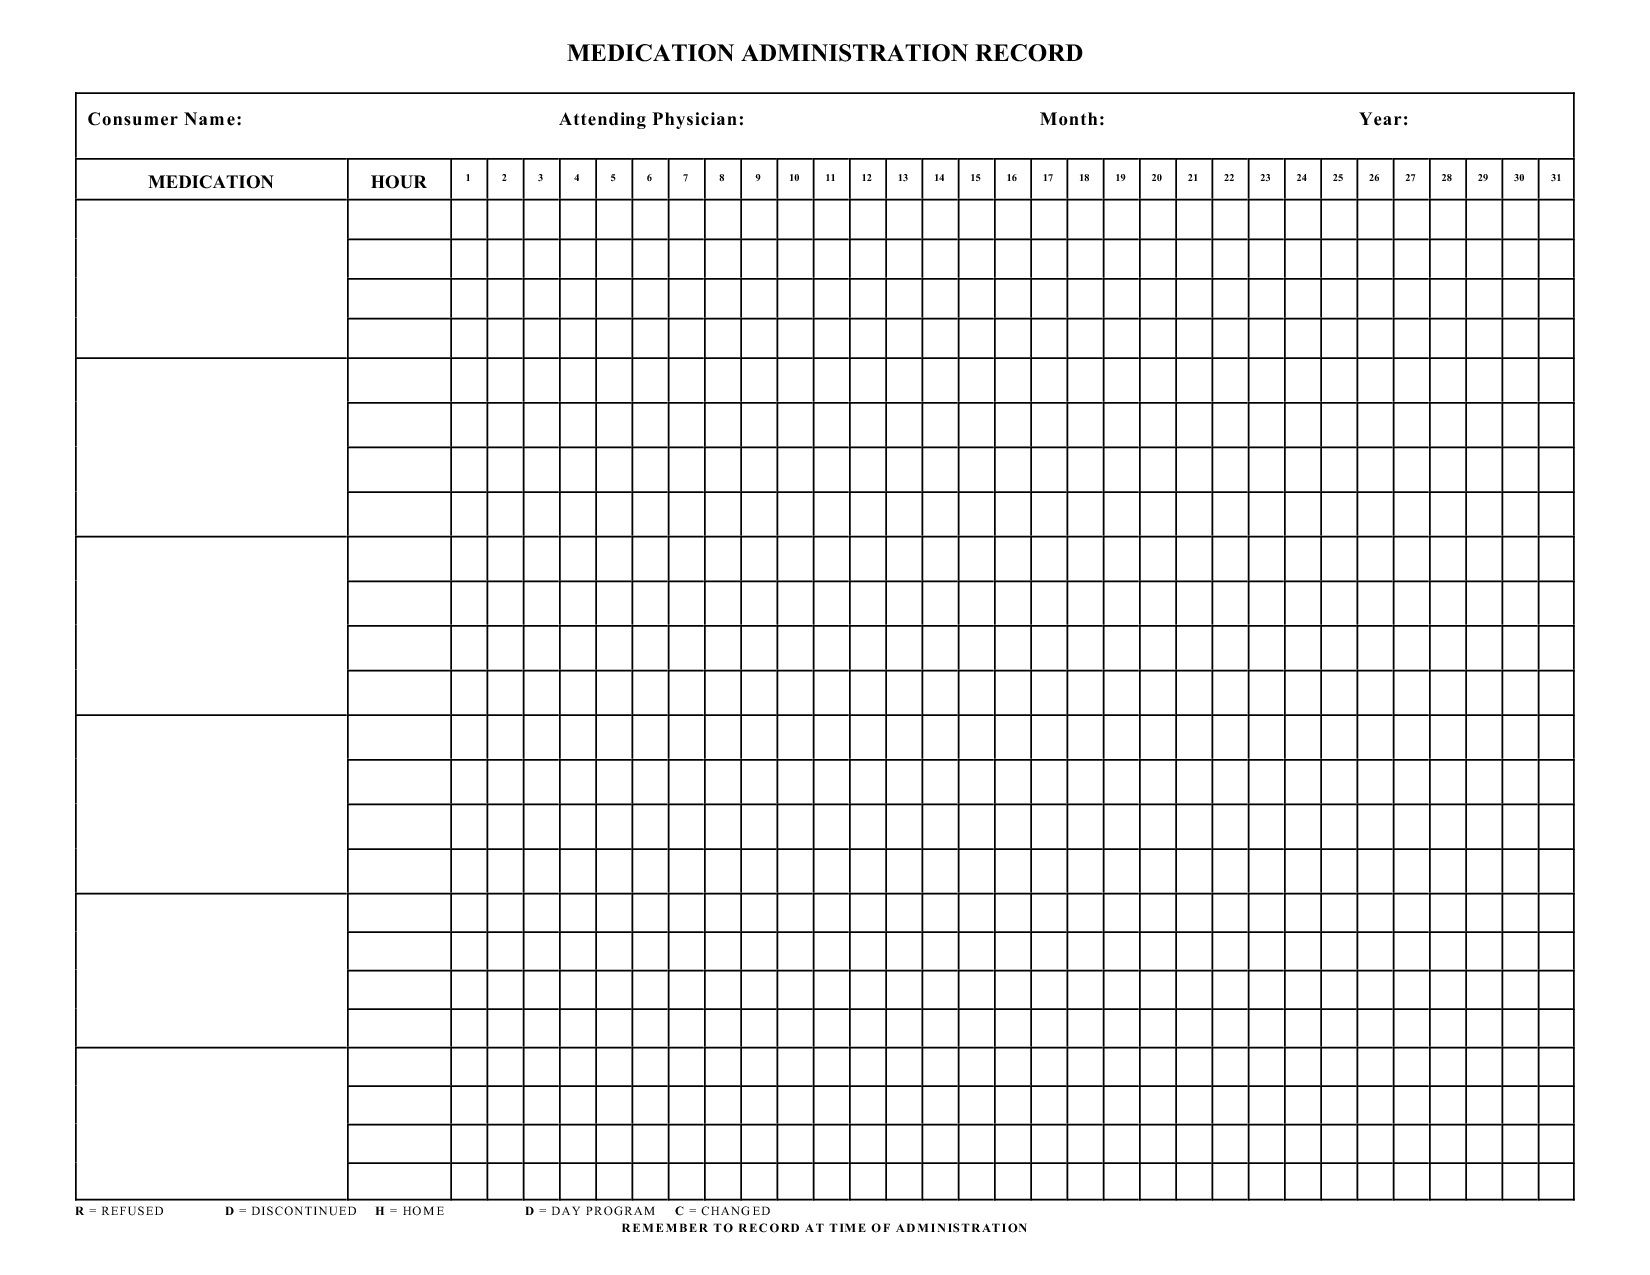 005 Sensational Medication Administration Record Template Sample  Download For Home UseFull